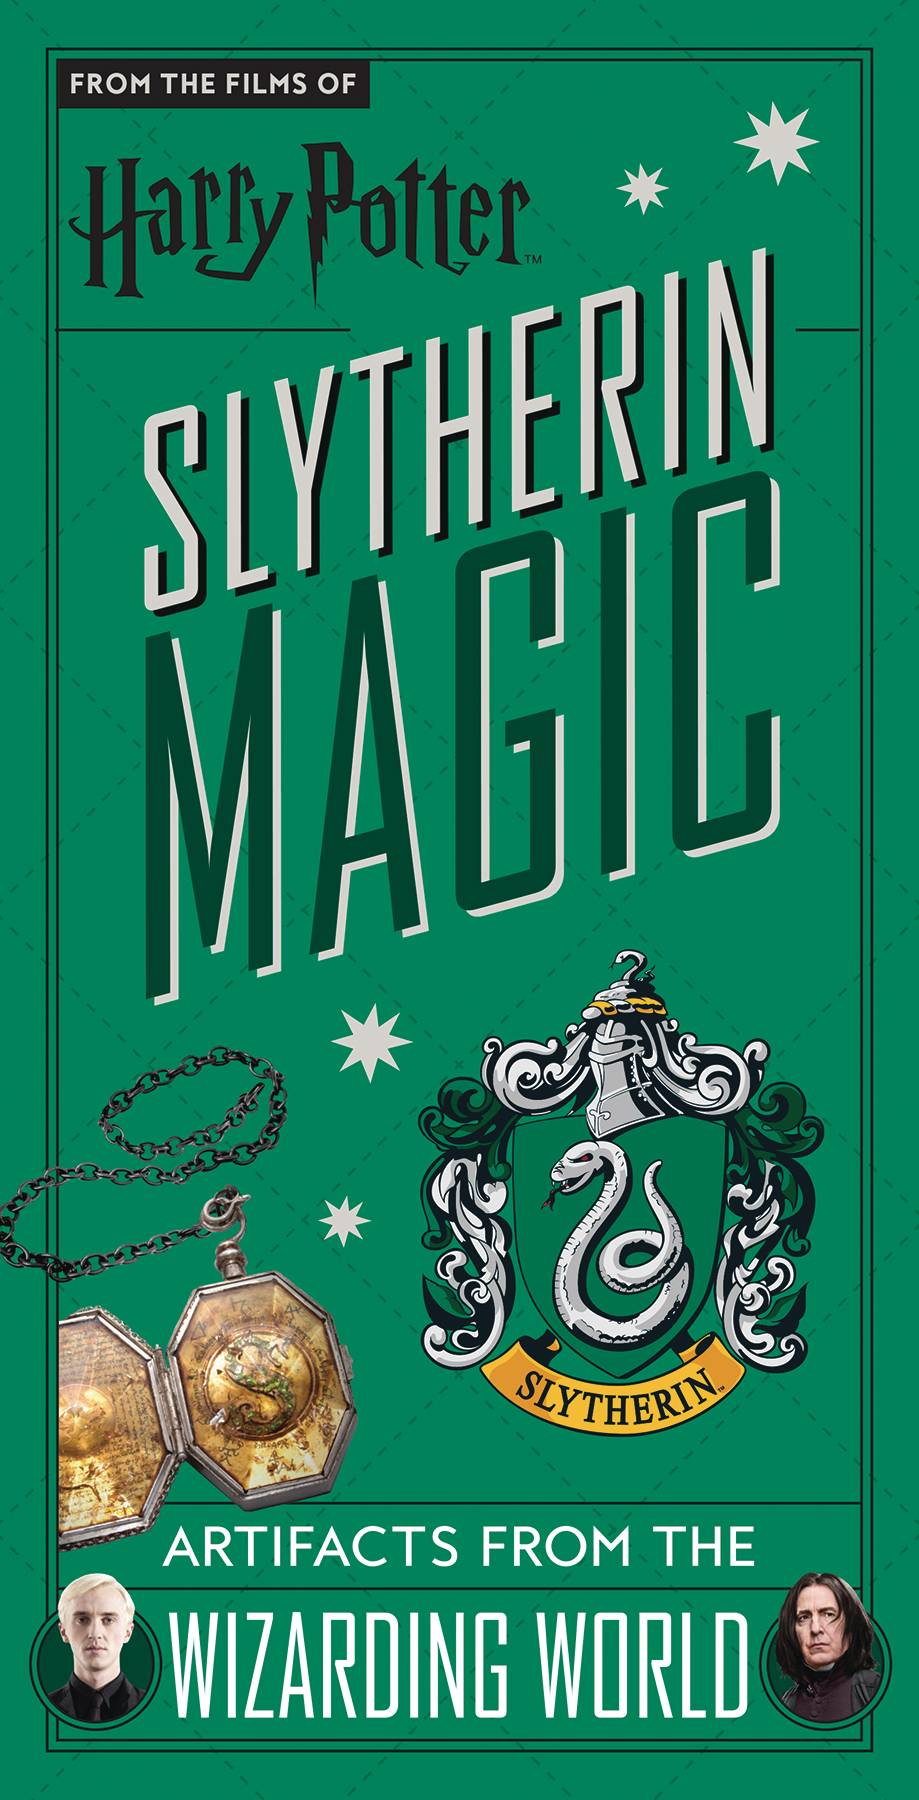 HARRY POTTER SLYTHERIN MAGIC COLLECTIONS SET